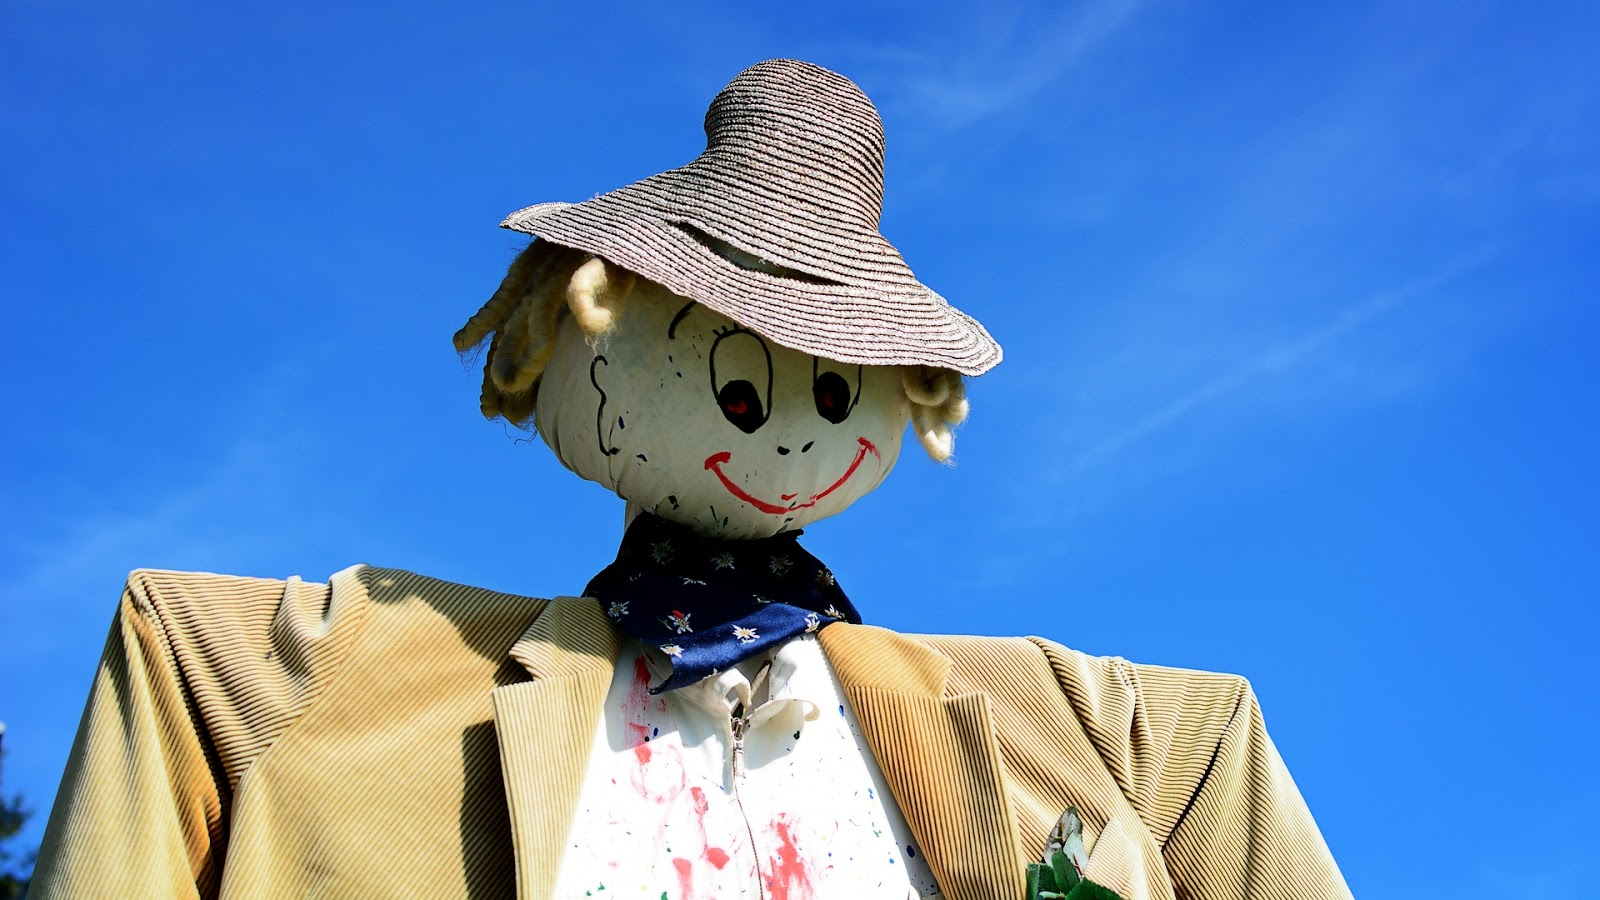 A scarecrow shot from below showing the shouders up.